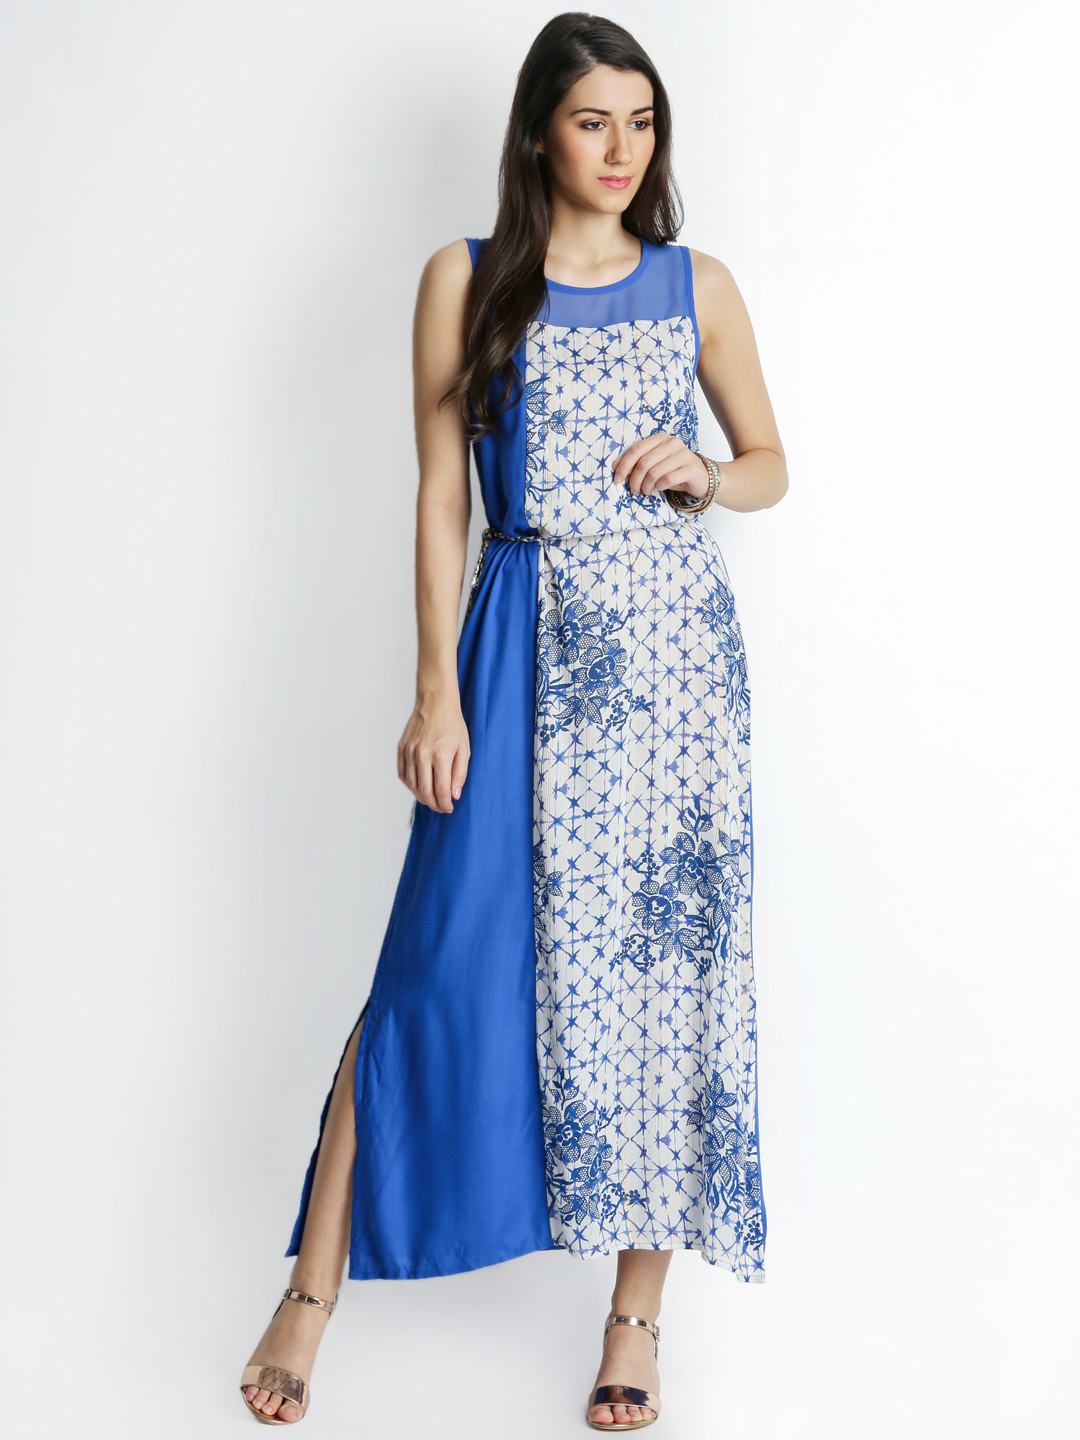 AKKRITI BY PANTALOONS Women Blue Printed A-Line Maxi Dress Price in India